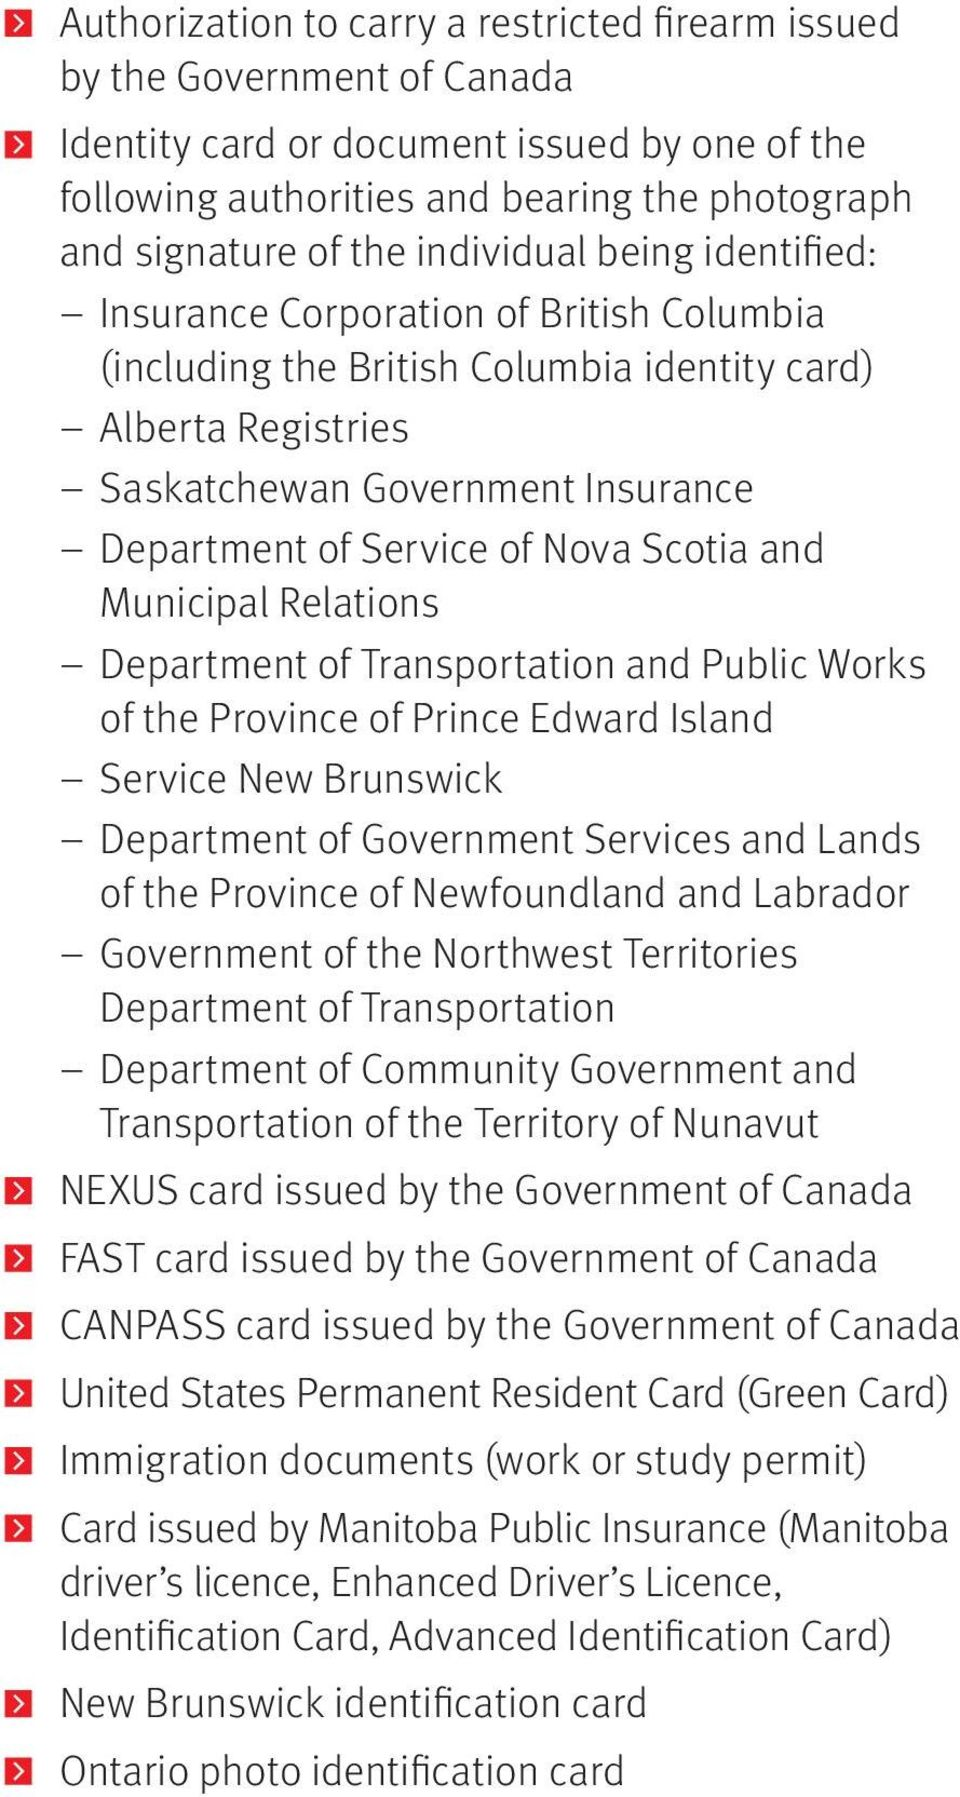 Nova Scotia and Municipal Relations Department of Transportation and Public Works of the Province of Prince Edward Island Service New Brunswick Department of Government Services and Lands of the